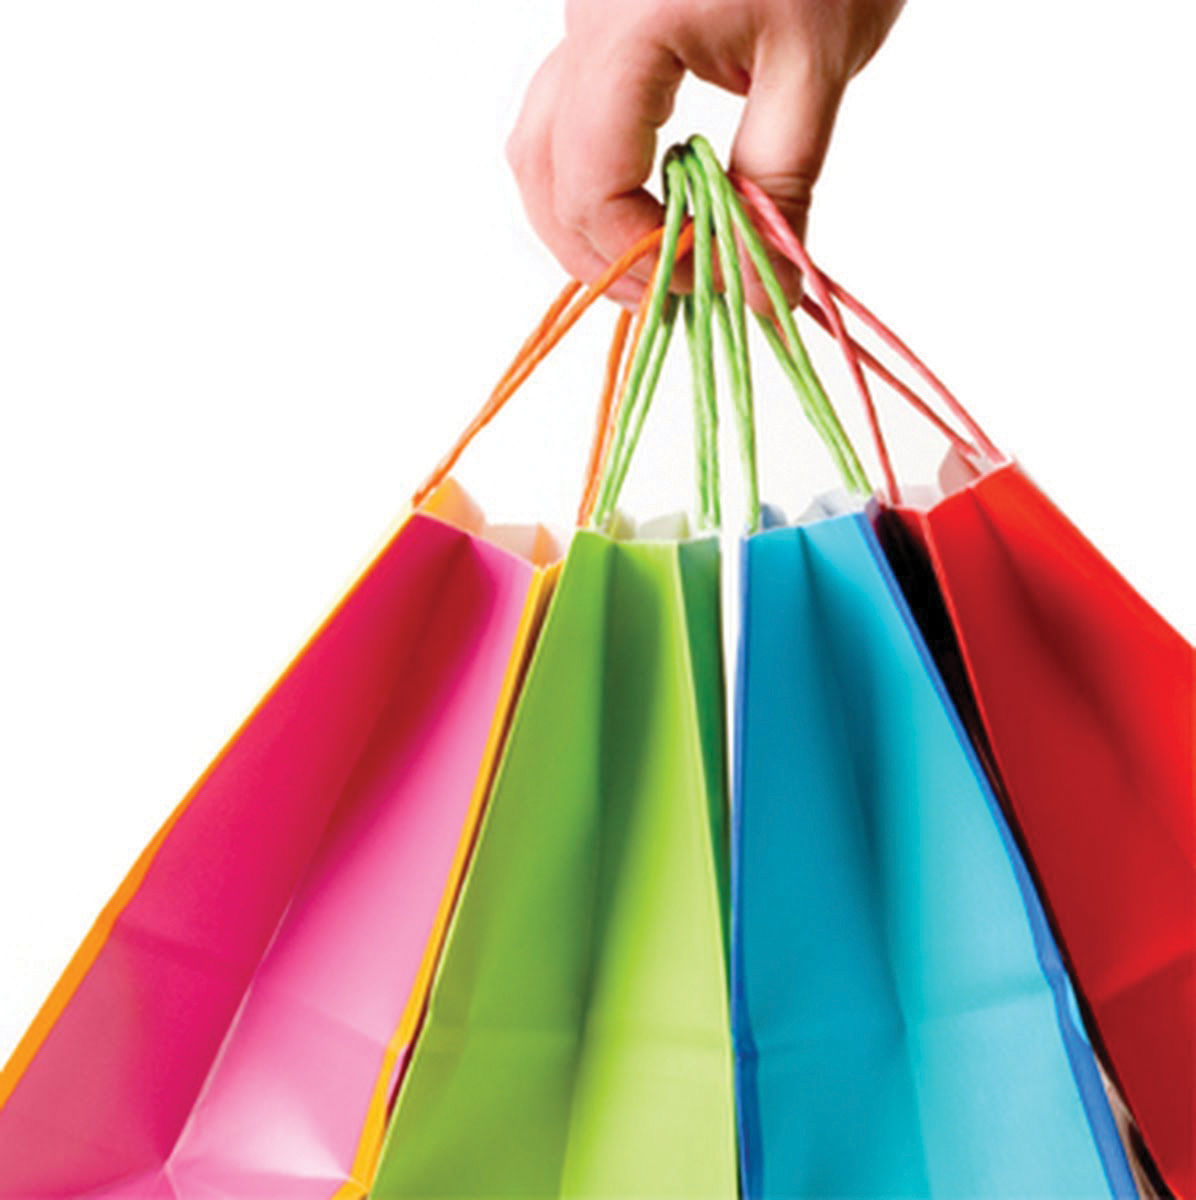 Consumption frenzy and the child